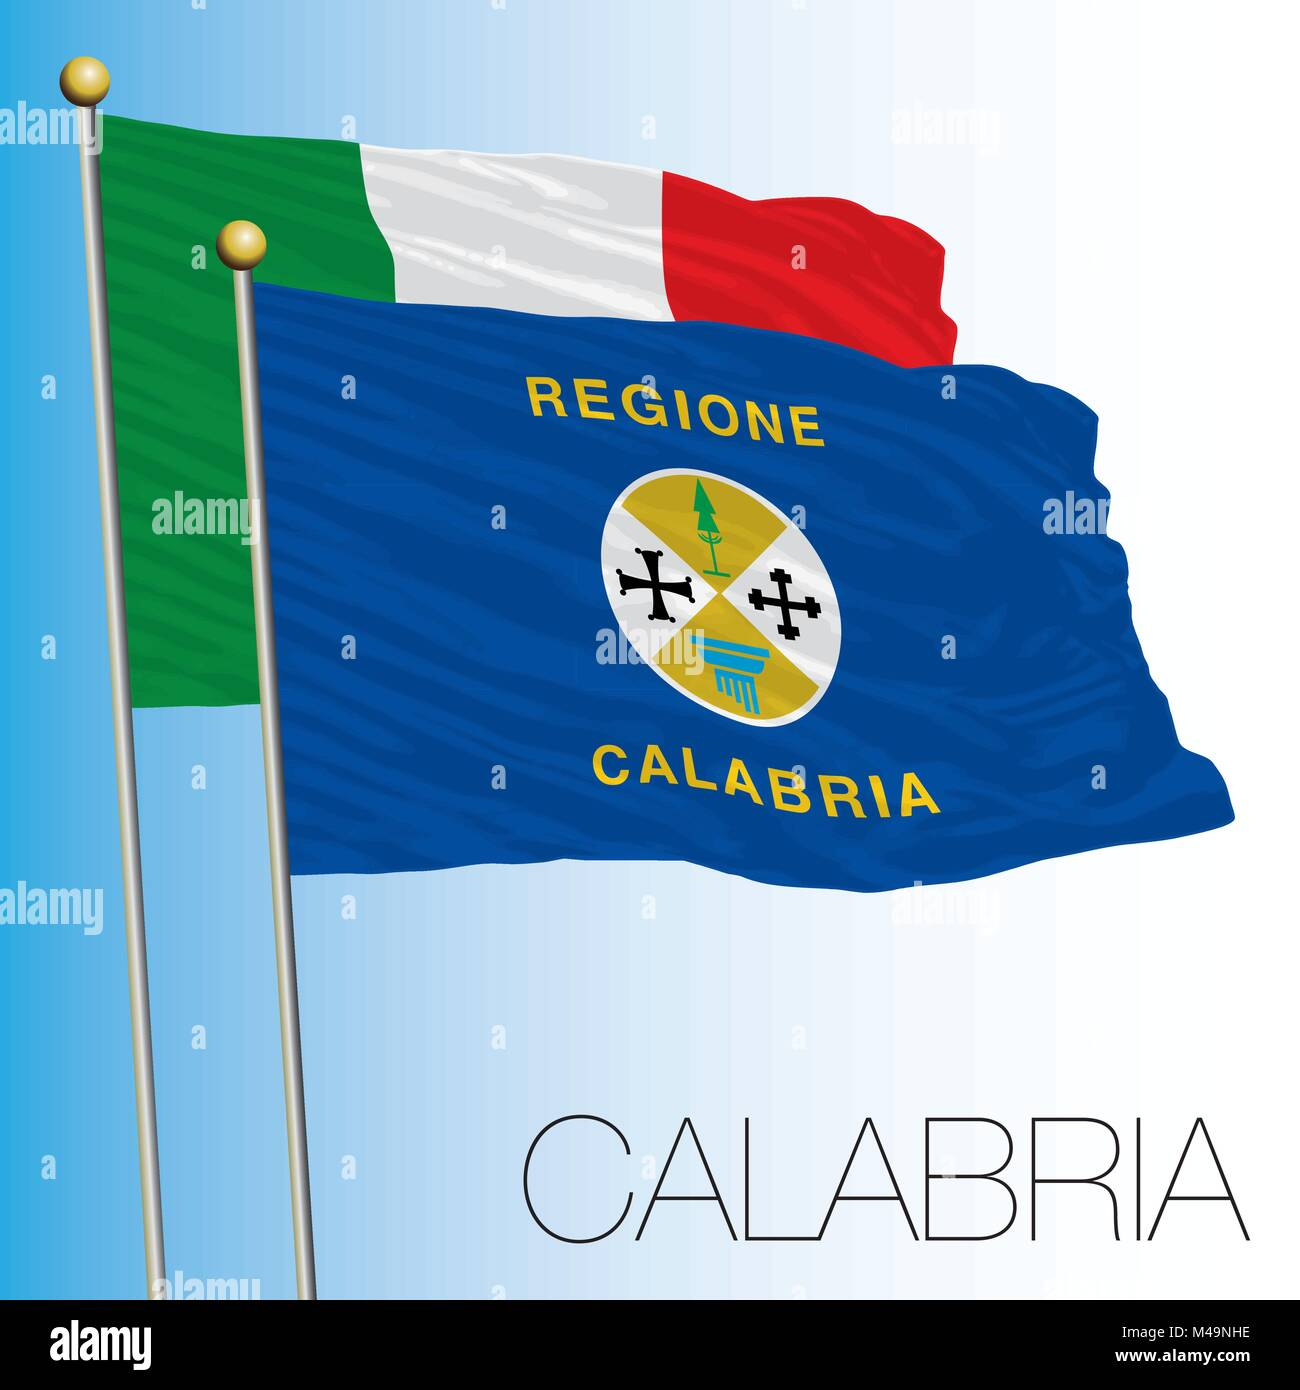 Calabria, regional flag, Italian Republic, Italy, European Union - Stock Vector